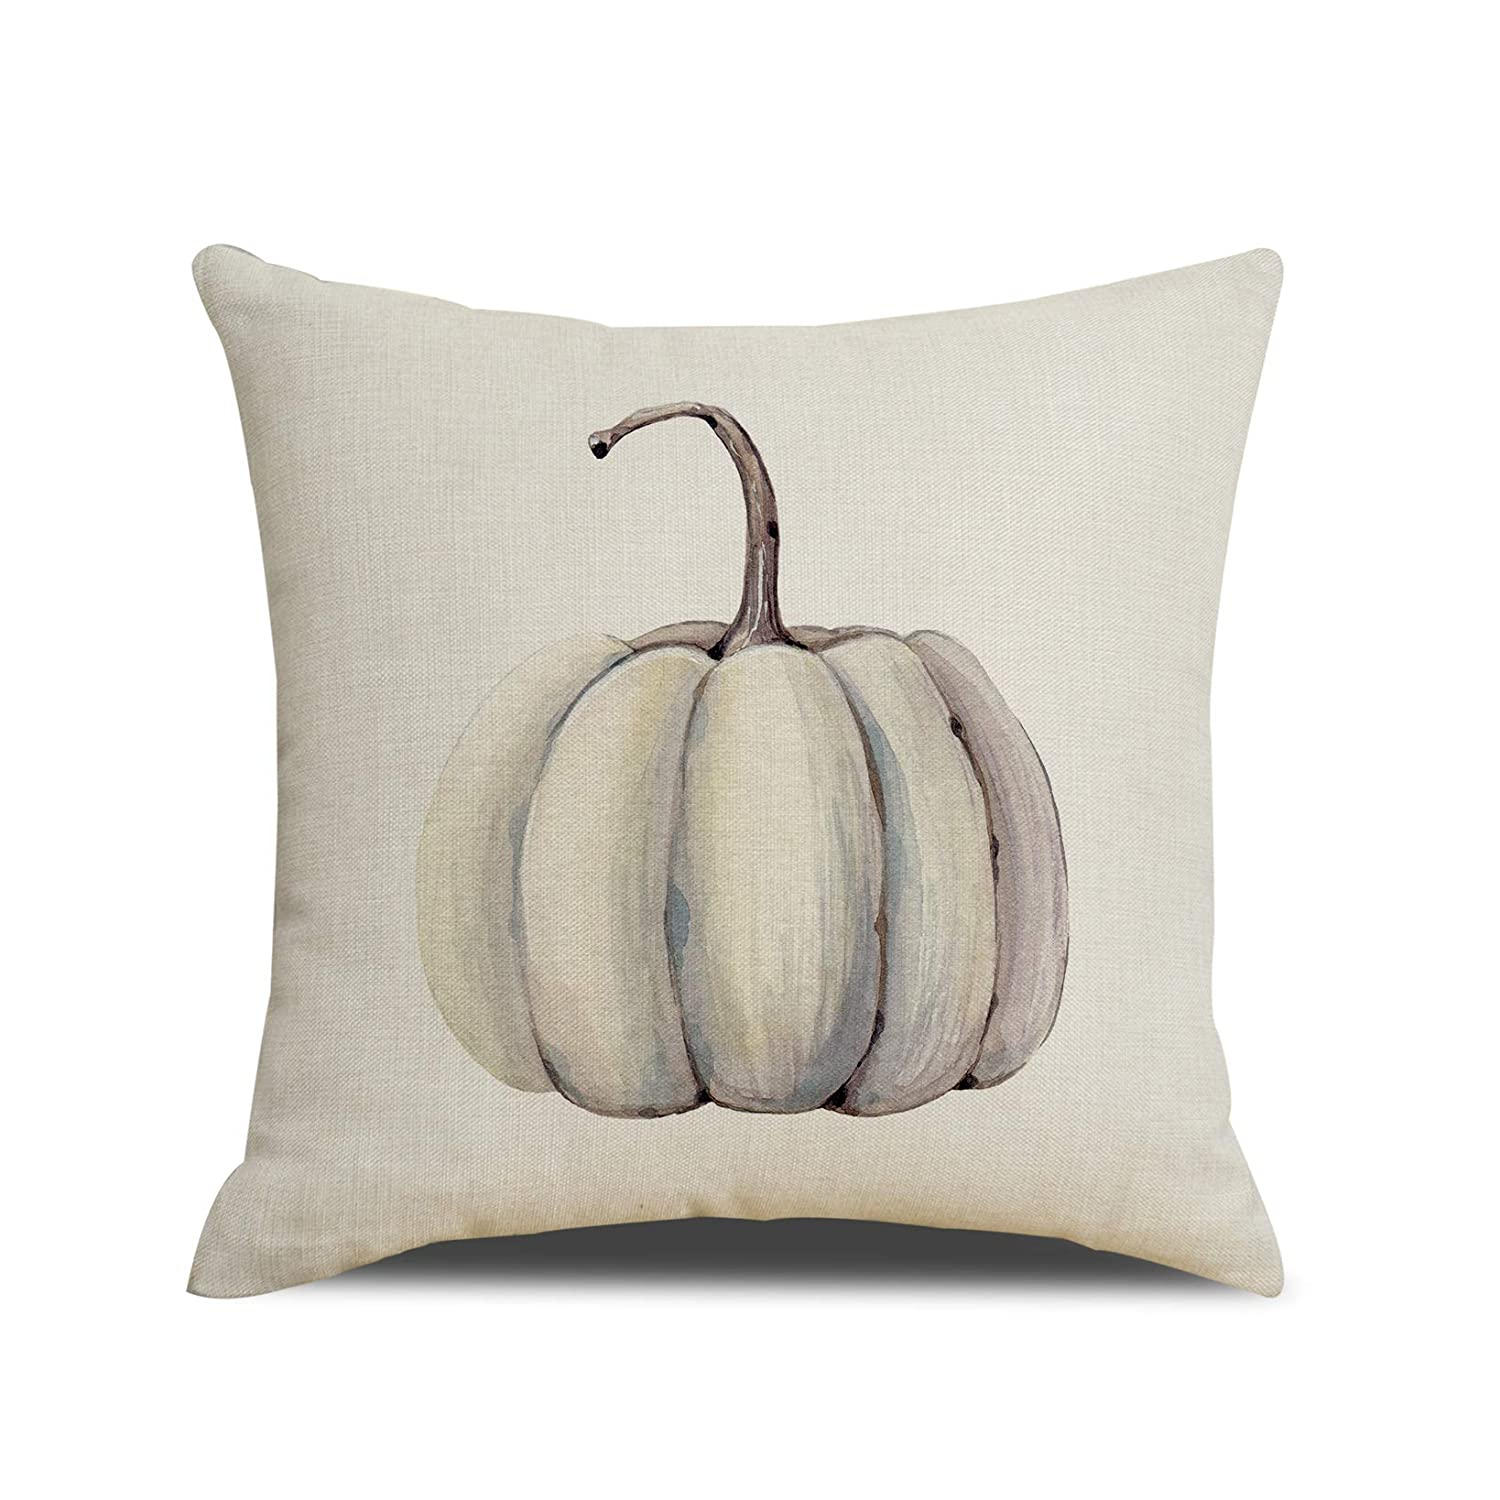 Pumpkin pillow cover - Come discover Rustic Farmhouse Fall Decor Inspiration Photos, Autumn Quotes & You Can Call Me Pumpkin.